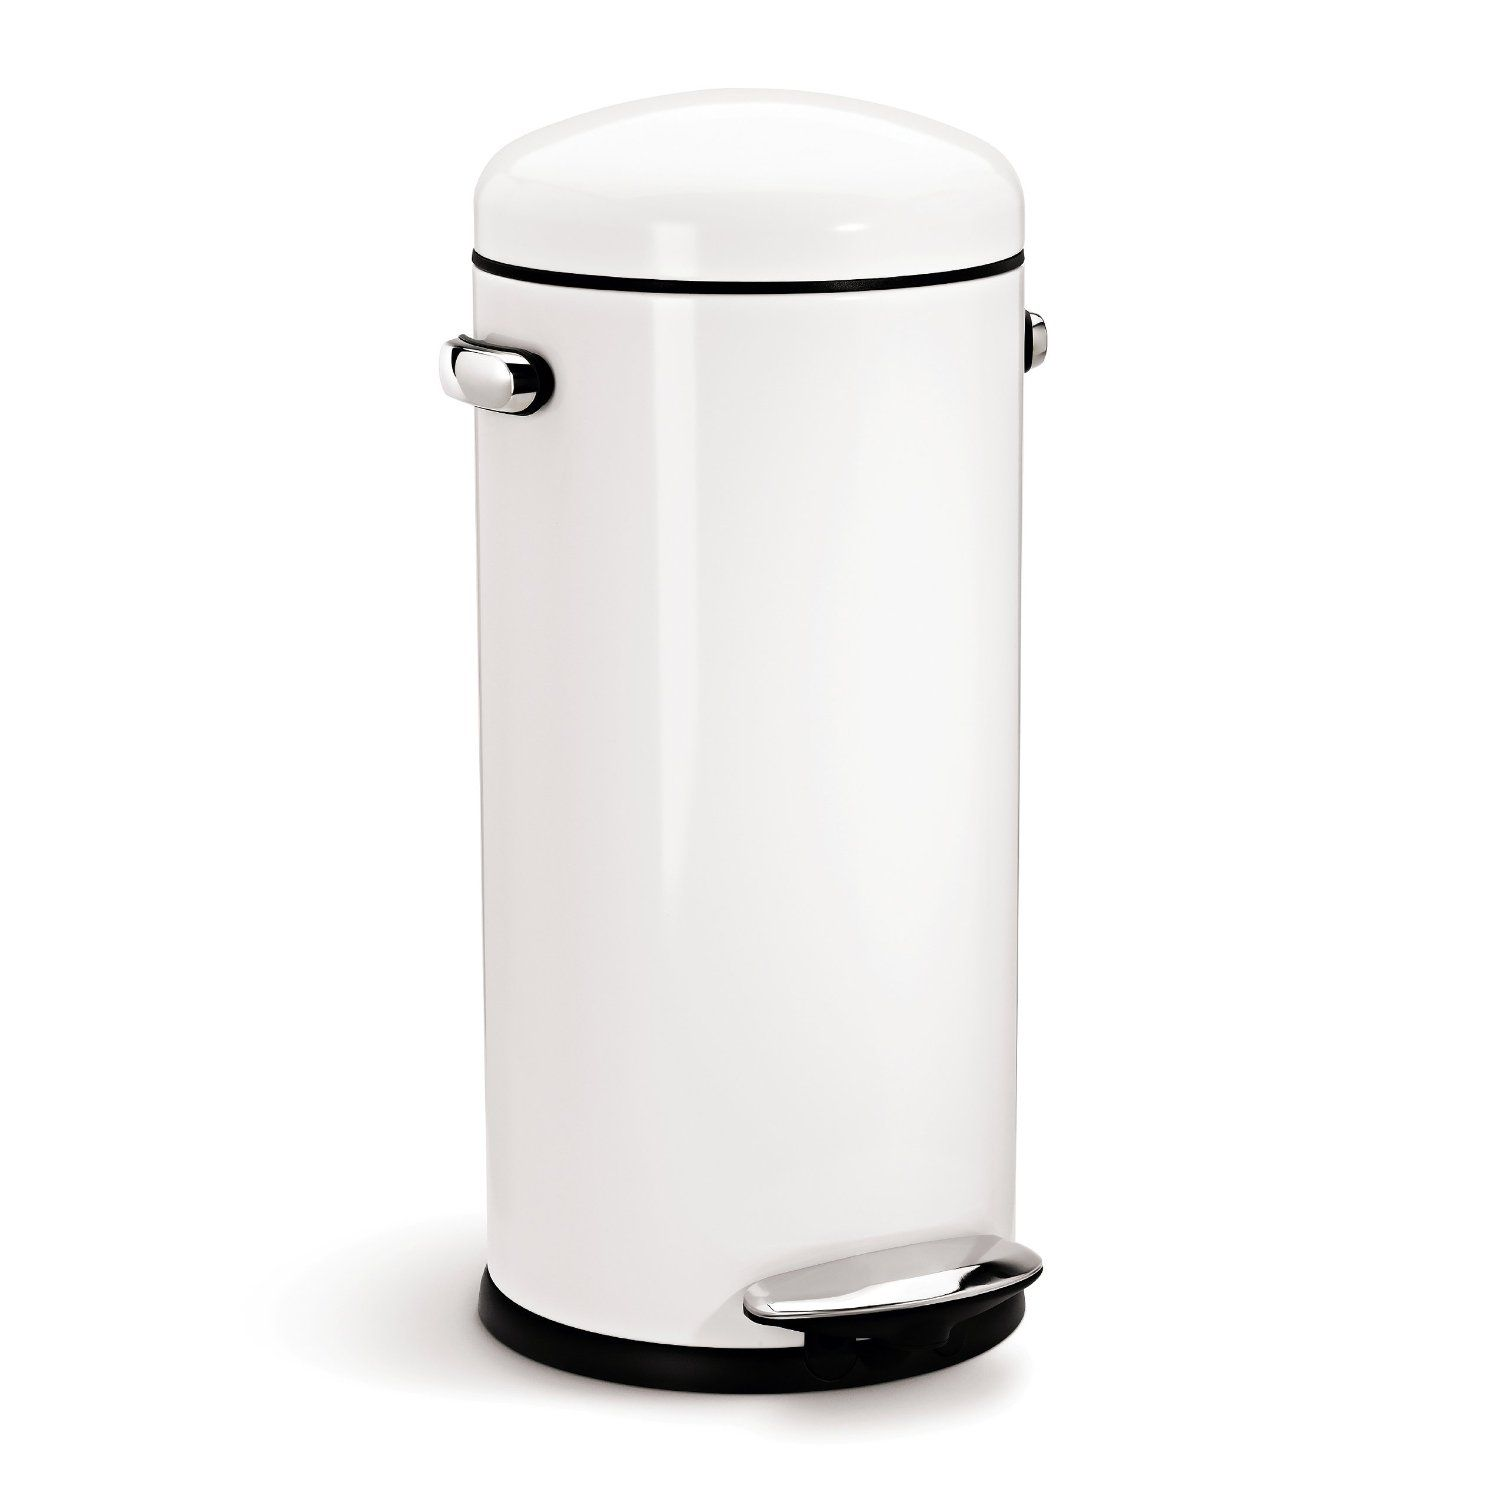 Kitchen Garbage Can Need This Cute Trash Can For My Kitchen Amazon Simplehuman Round